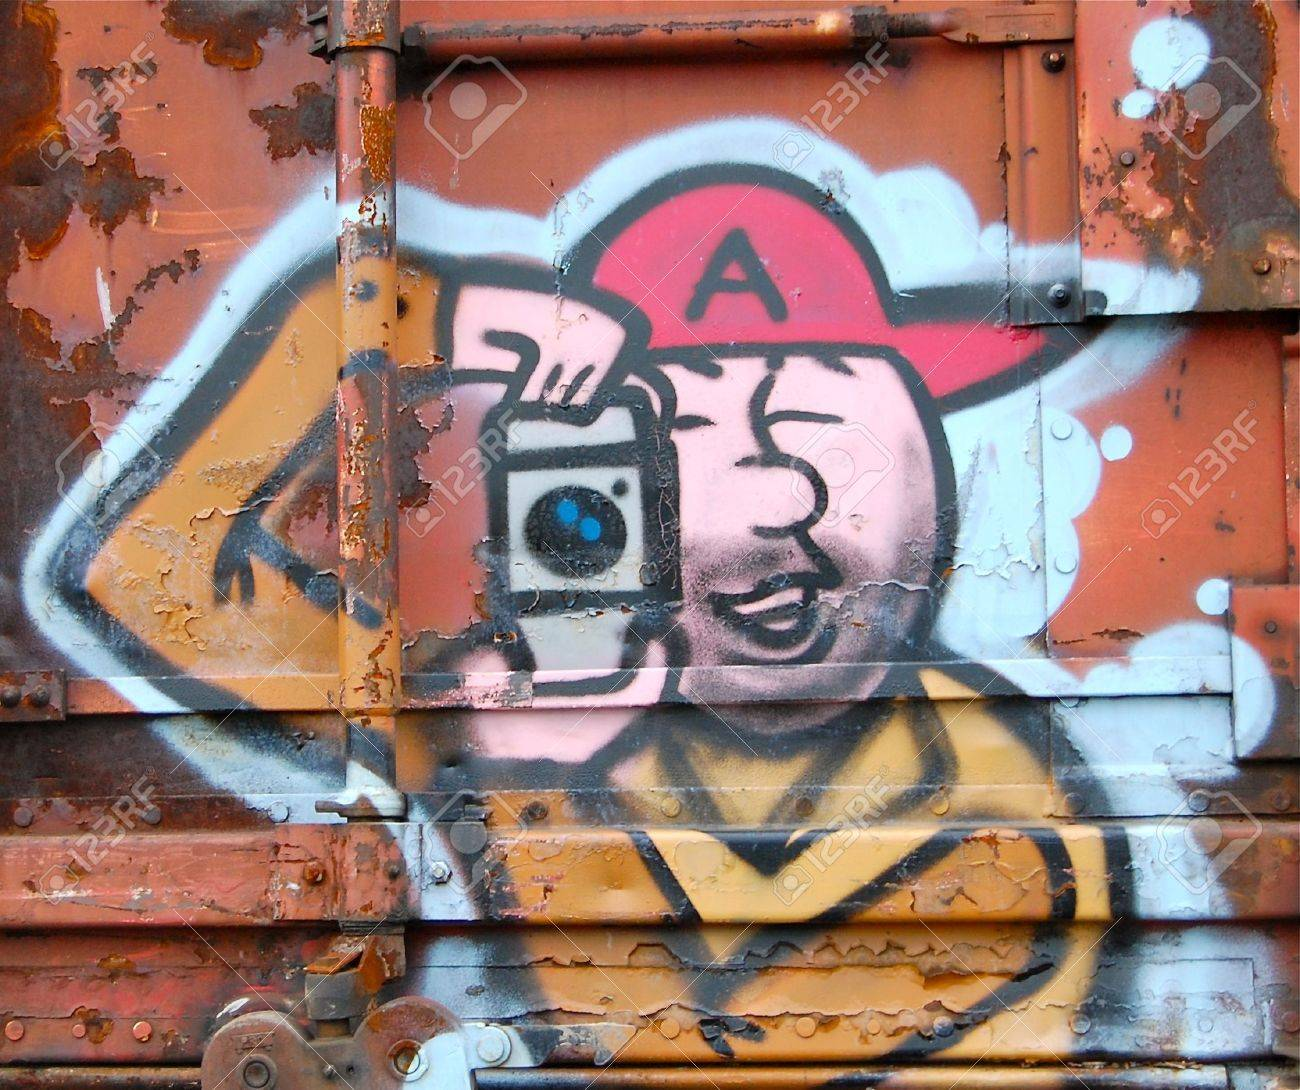 Happy Graffiti Painted On Rusted Freight Train Car Passing Through North Portland In Oregon Depicts Photographer